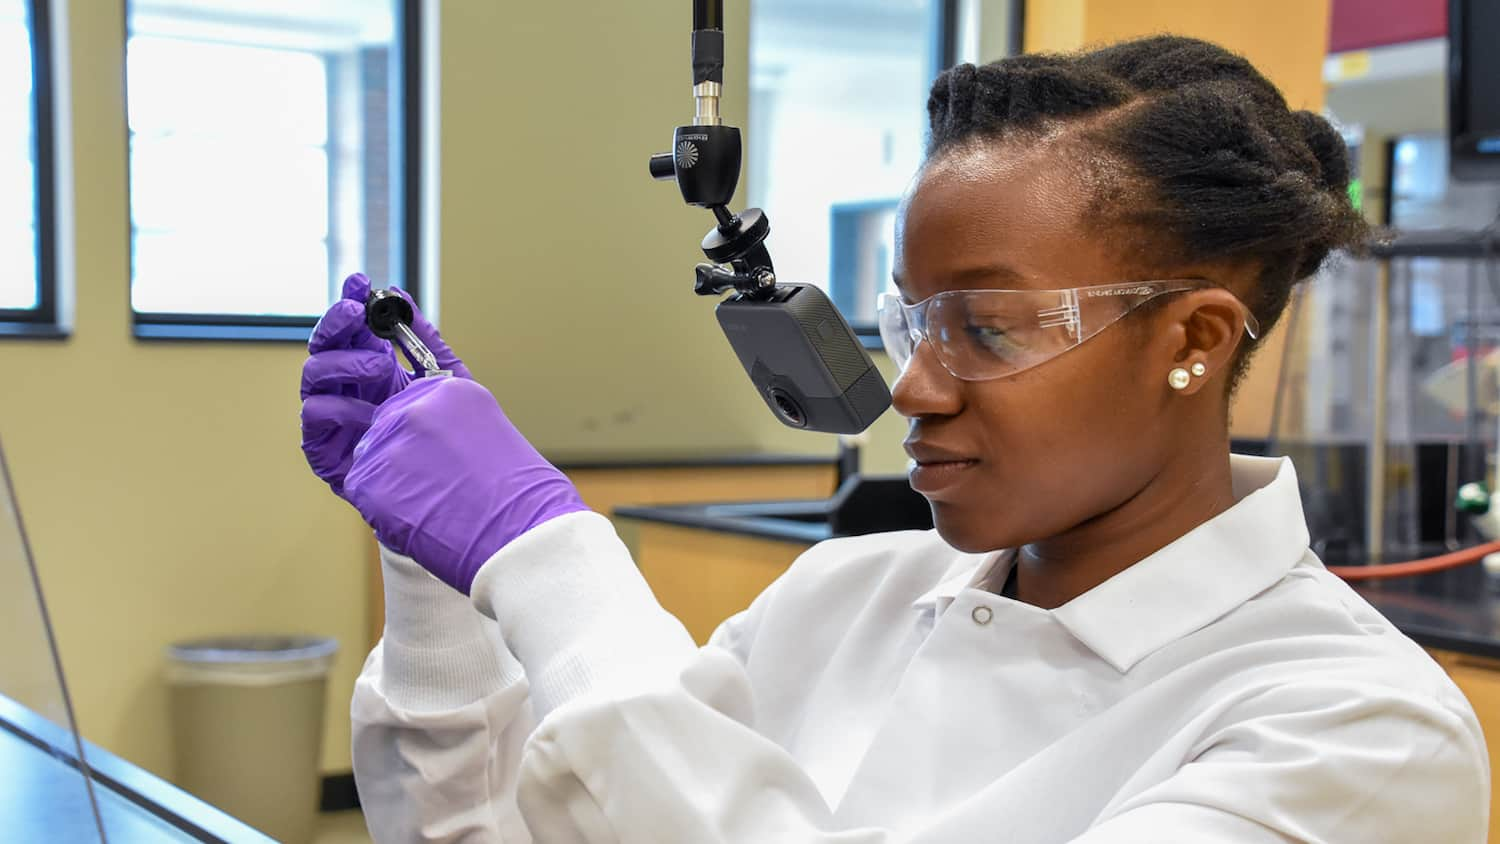 Teaching Assistant Lyniesha Wright during a test shoot of the organic chemistry virtual reality labs. The placement of the GoPro Fusion 360° camera gives the experience a first-person point of view.